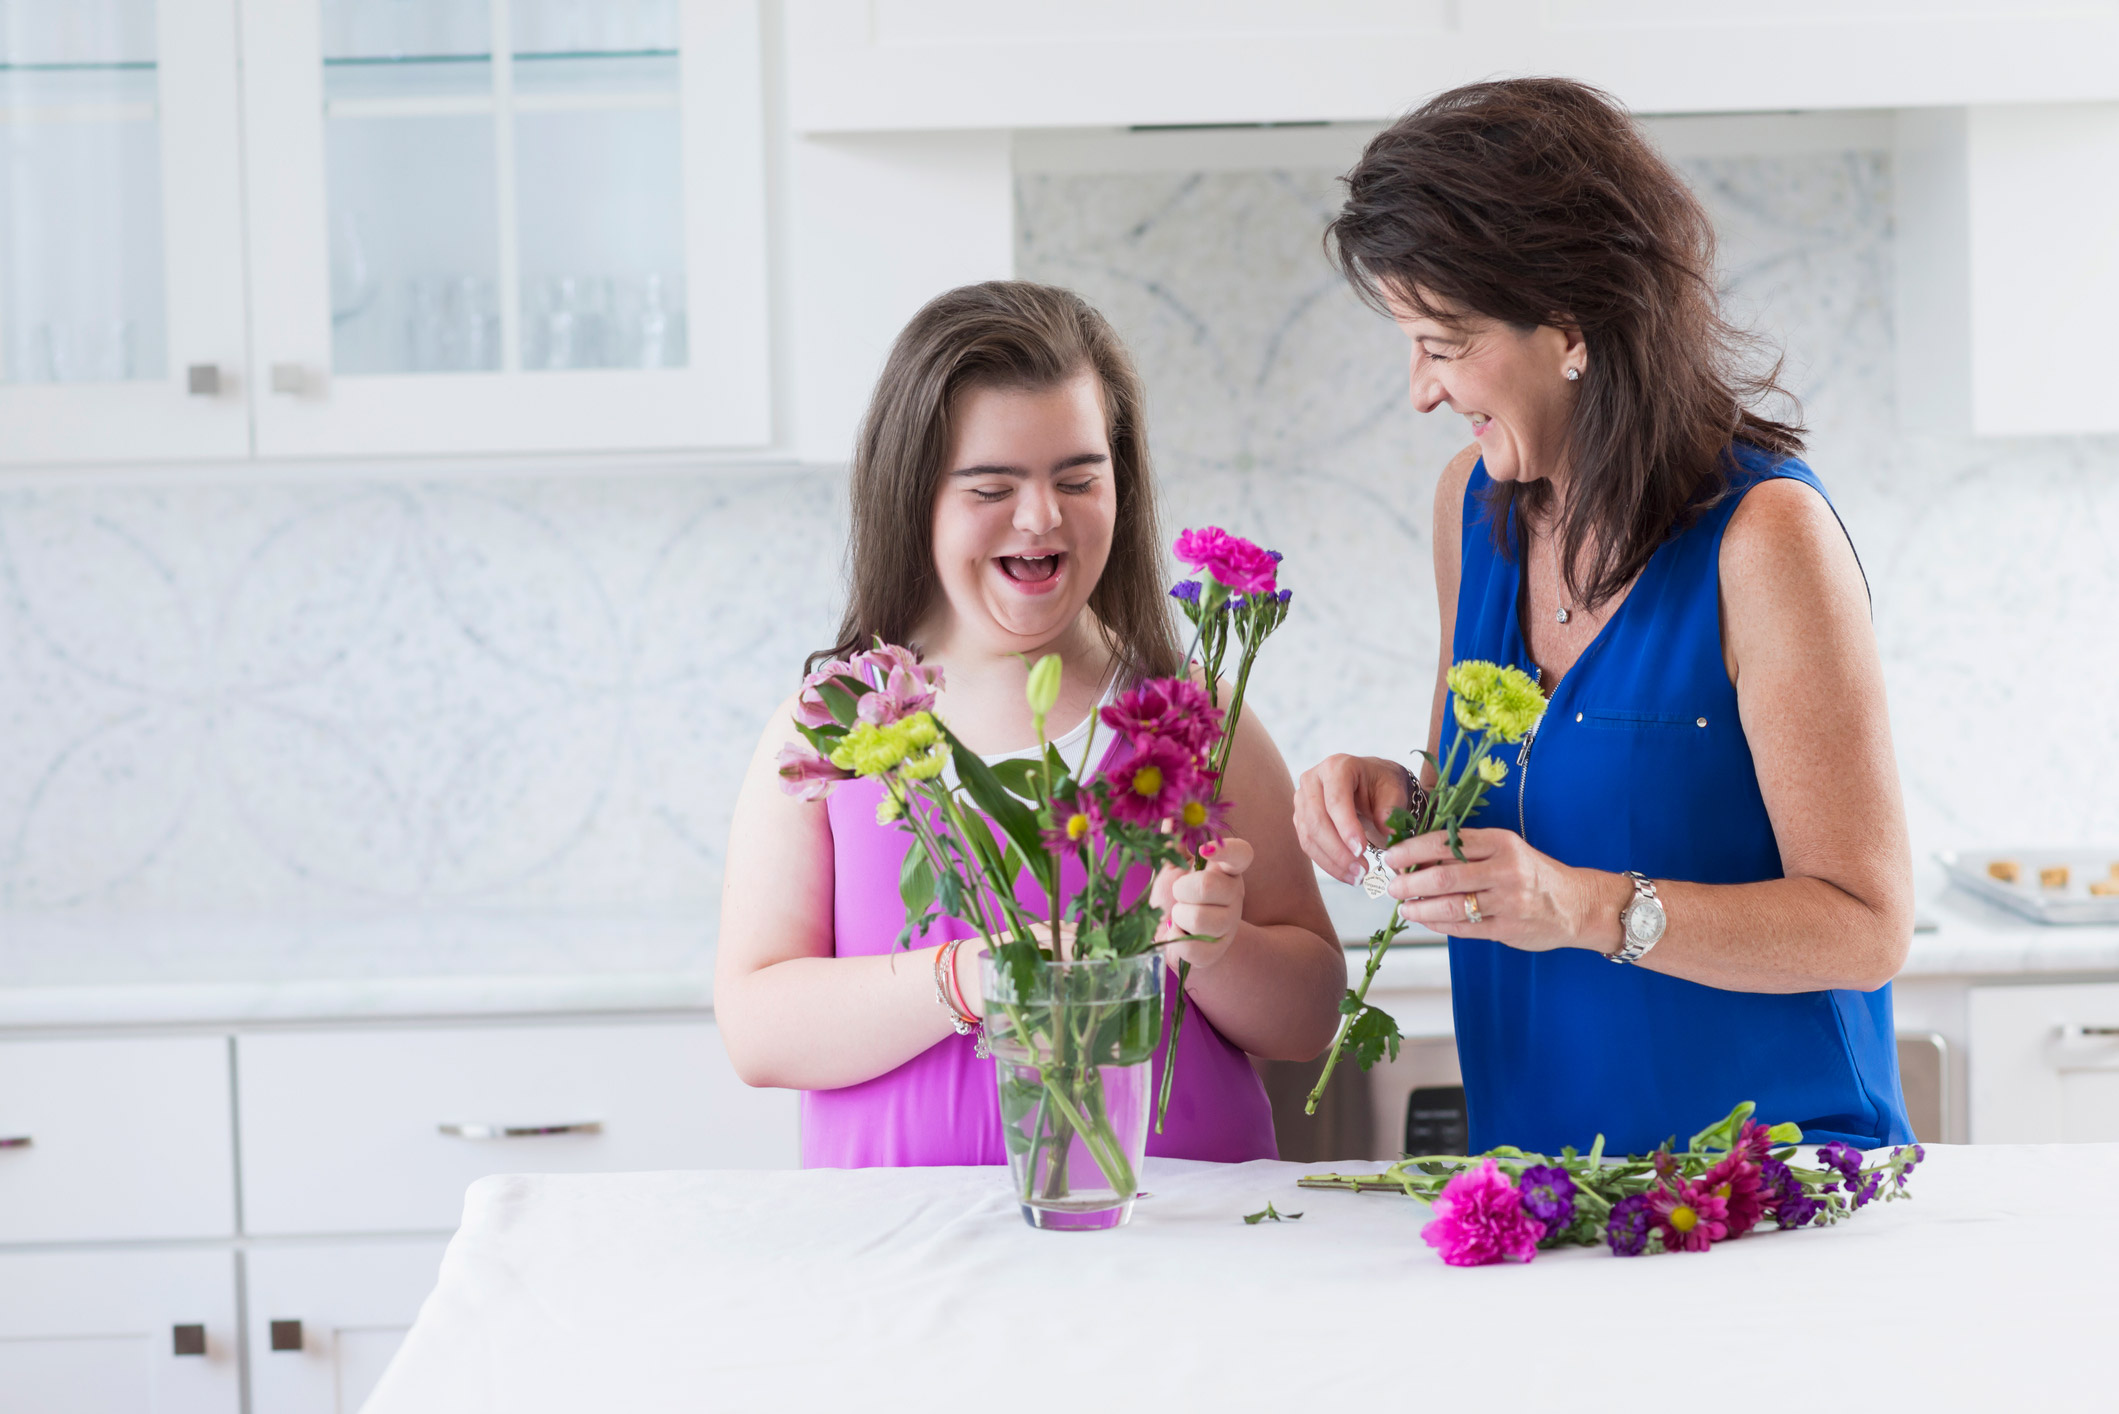 A mother is laughing with her daughter, and looking at her as her daughter looks down. They are both placing flowers in a clear glass vase on a white table in the kitchen. All the cabinets and drawers are white.